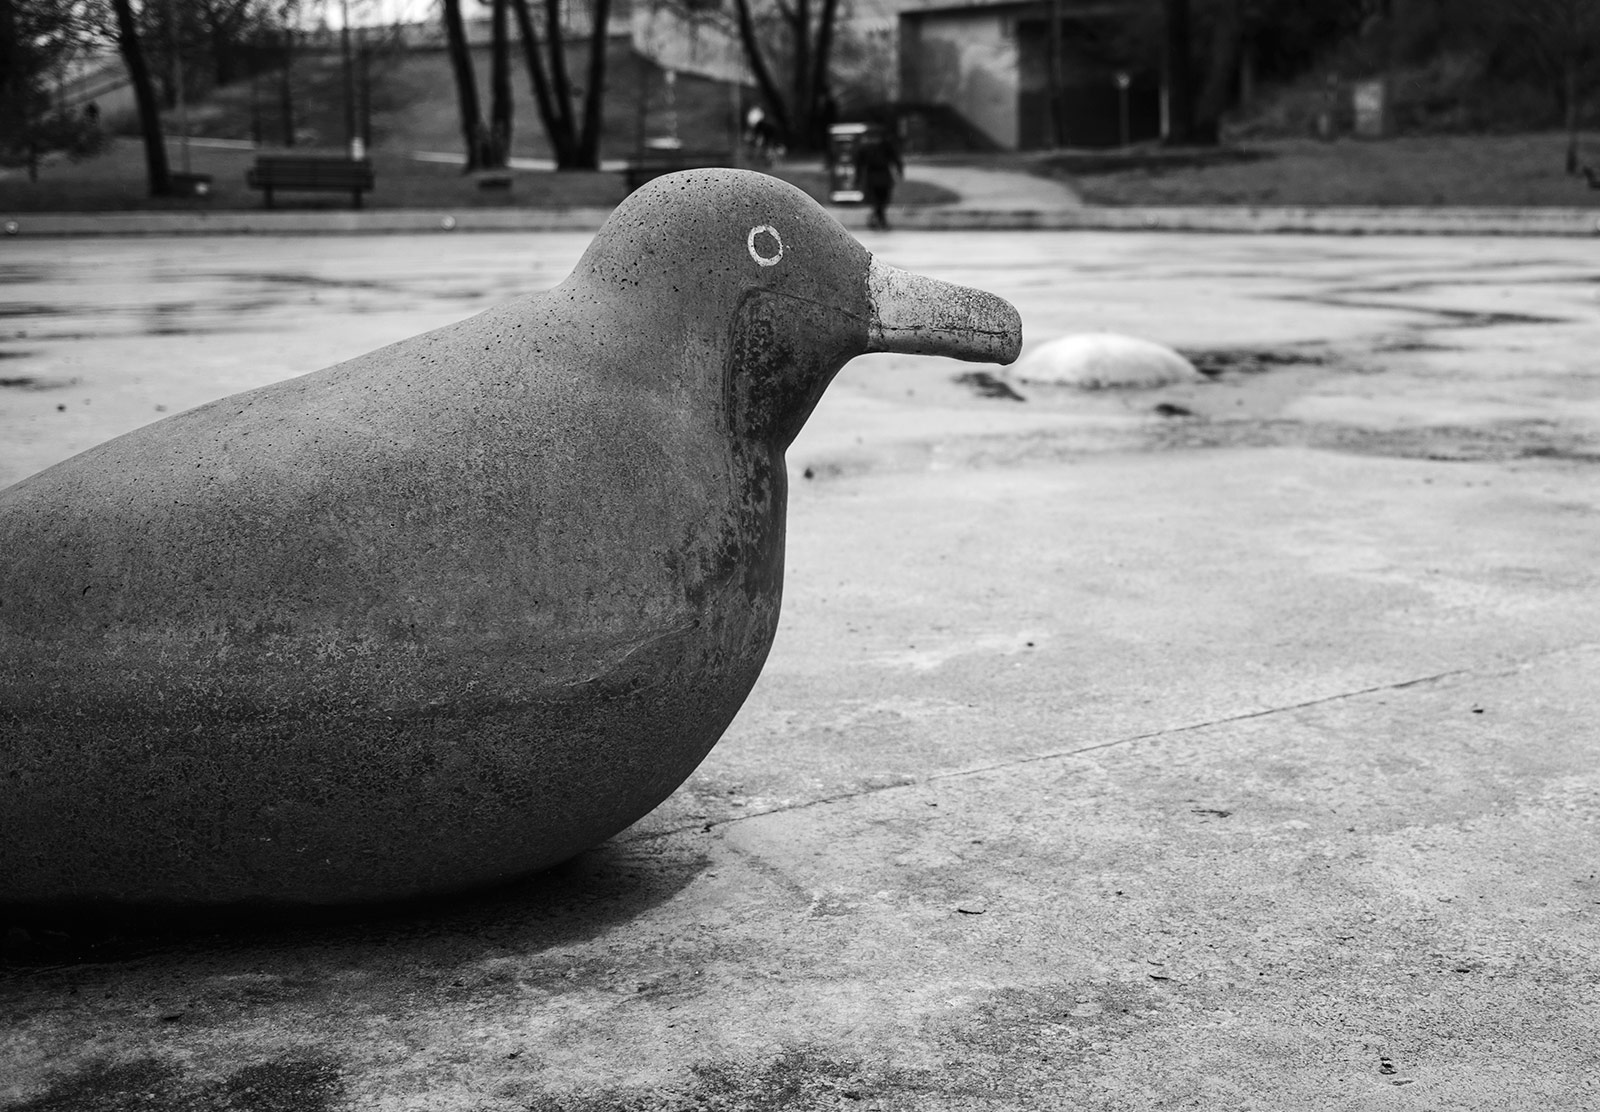 Concrete bird